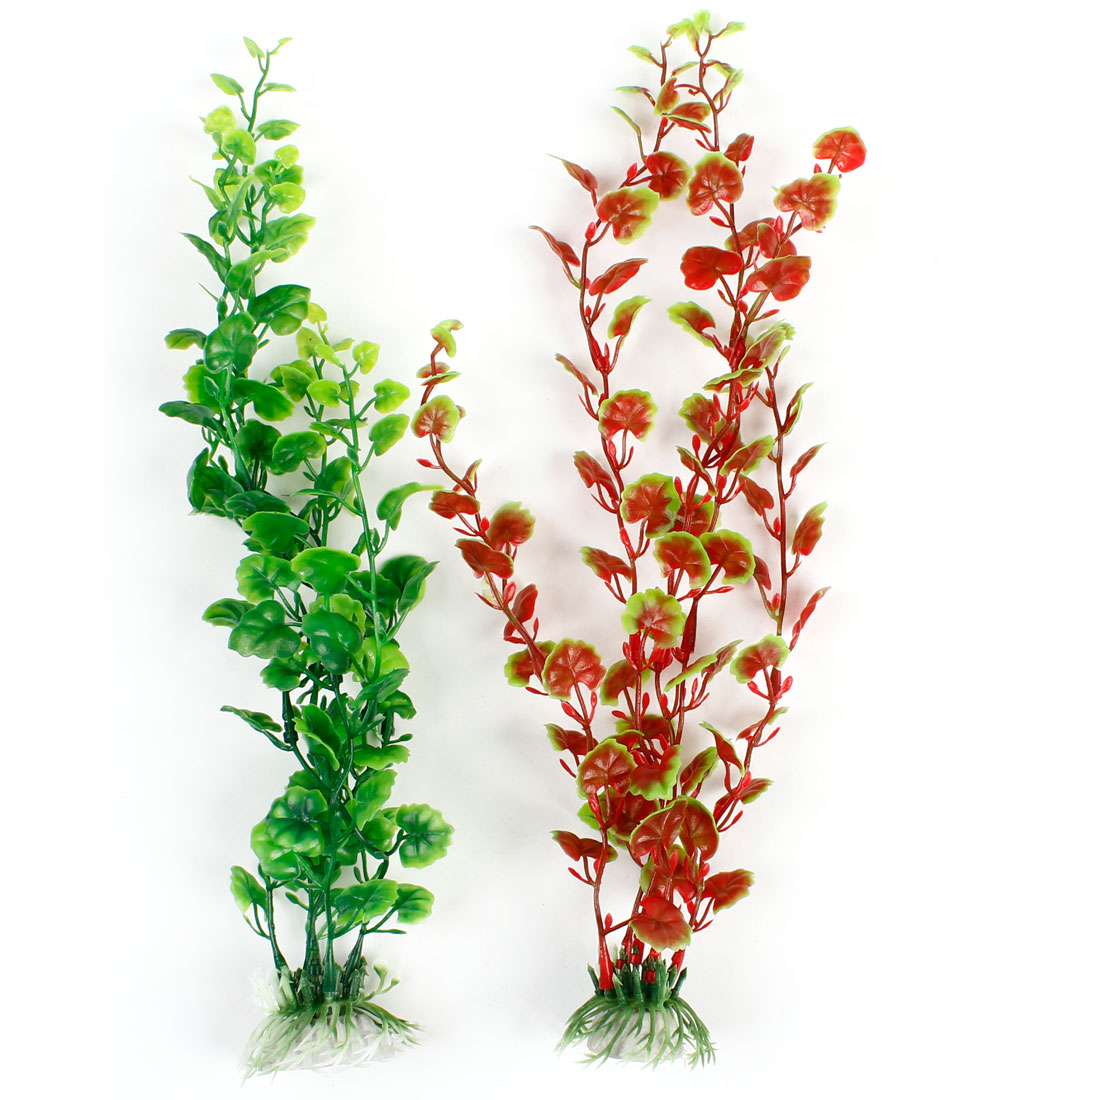 Red Green Water Plants Decor 2 Pcs for Fish Tank Aquarium Aquascaping